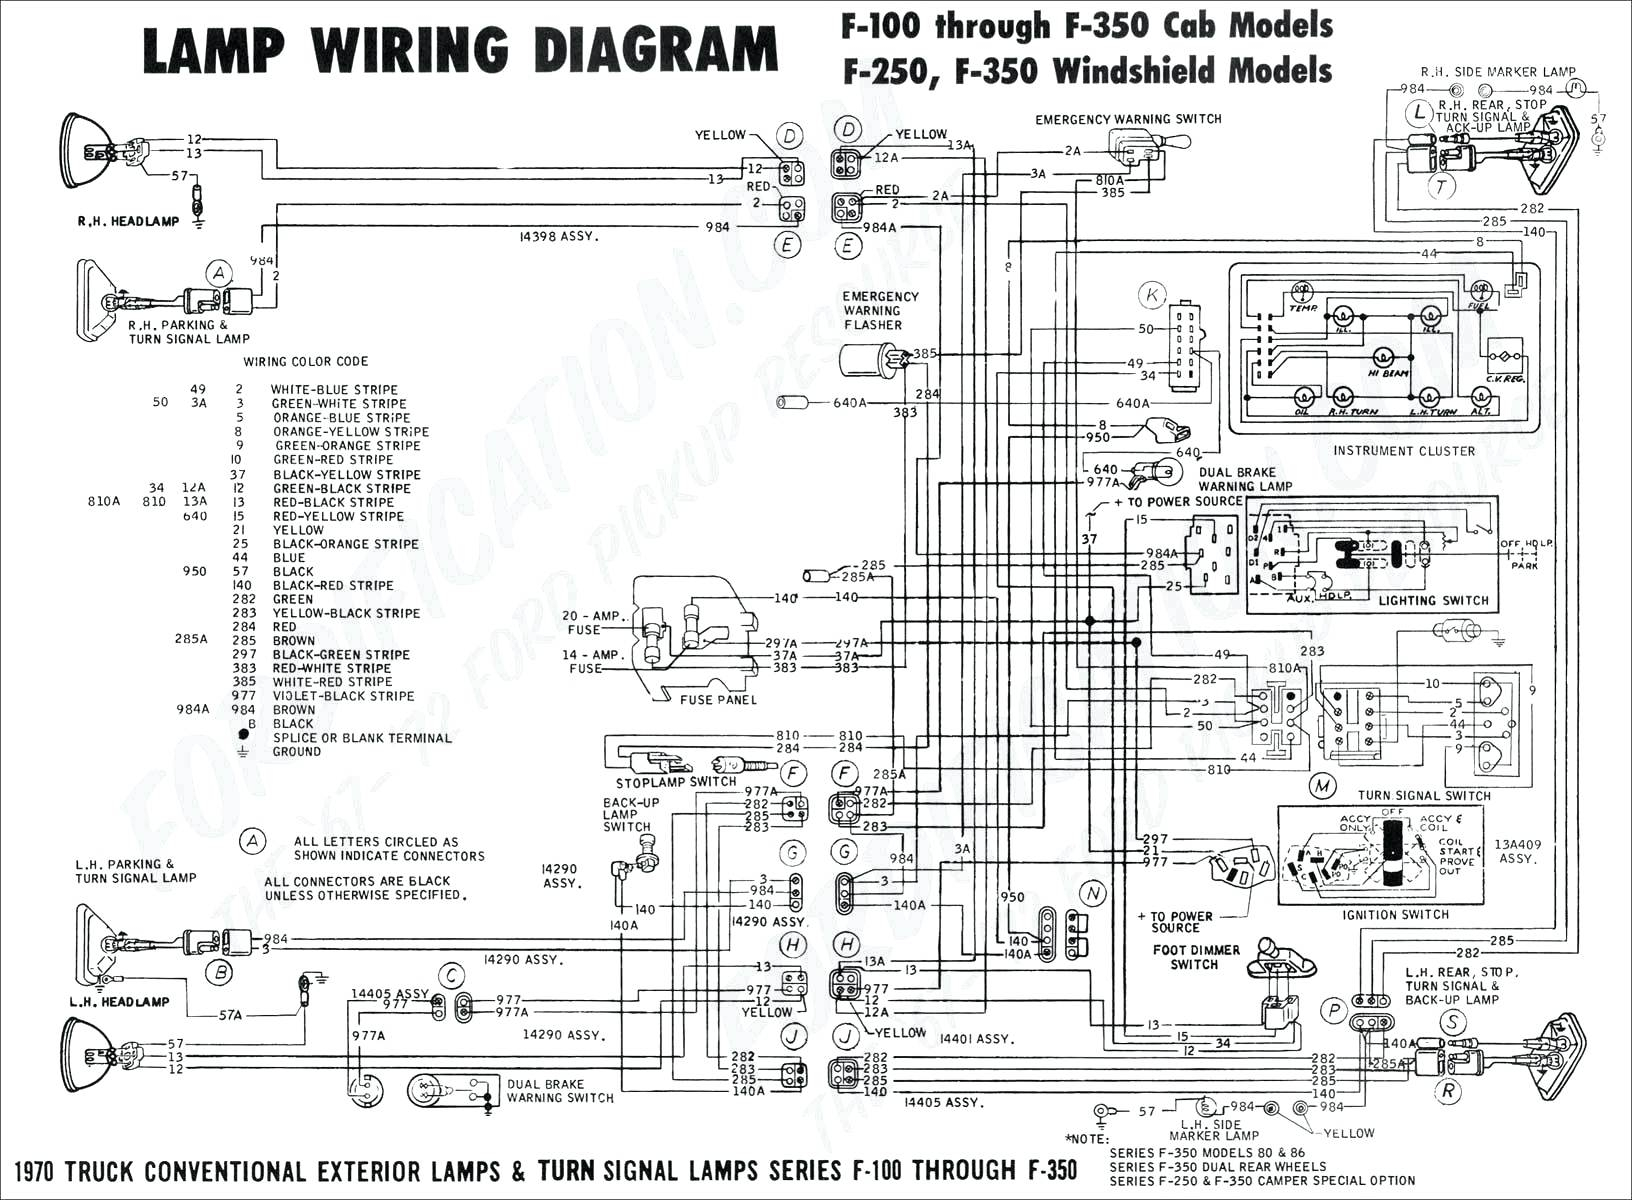 Get 2003 Dodge Ram 2500 Trailer Wiring Diagram Sample